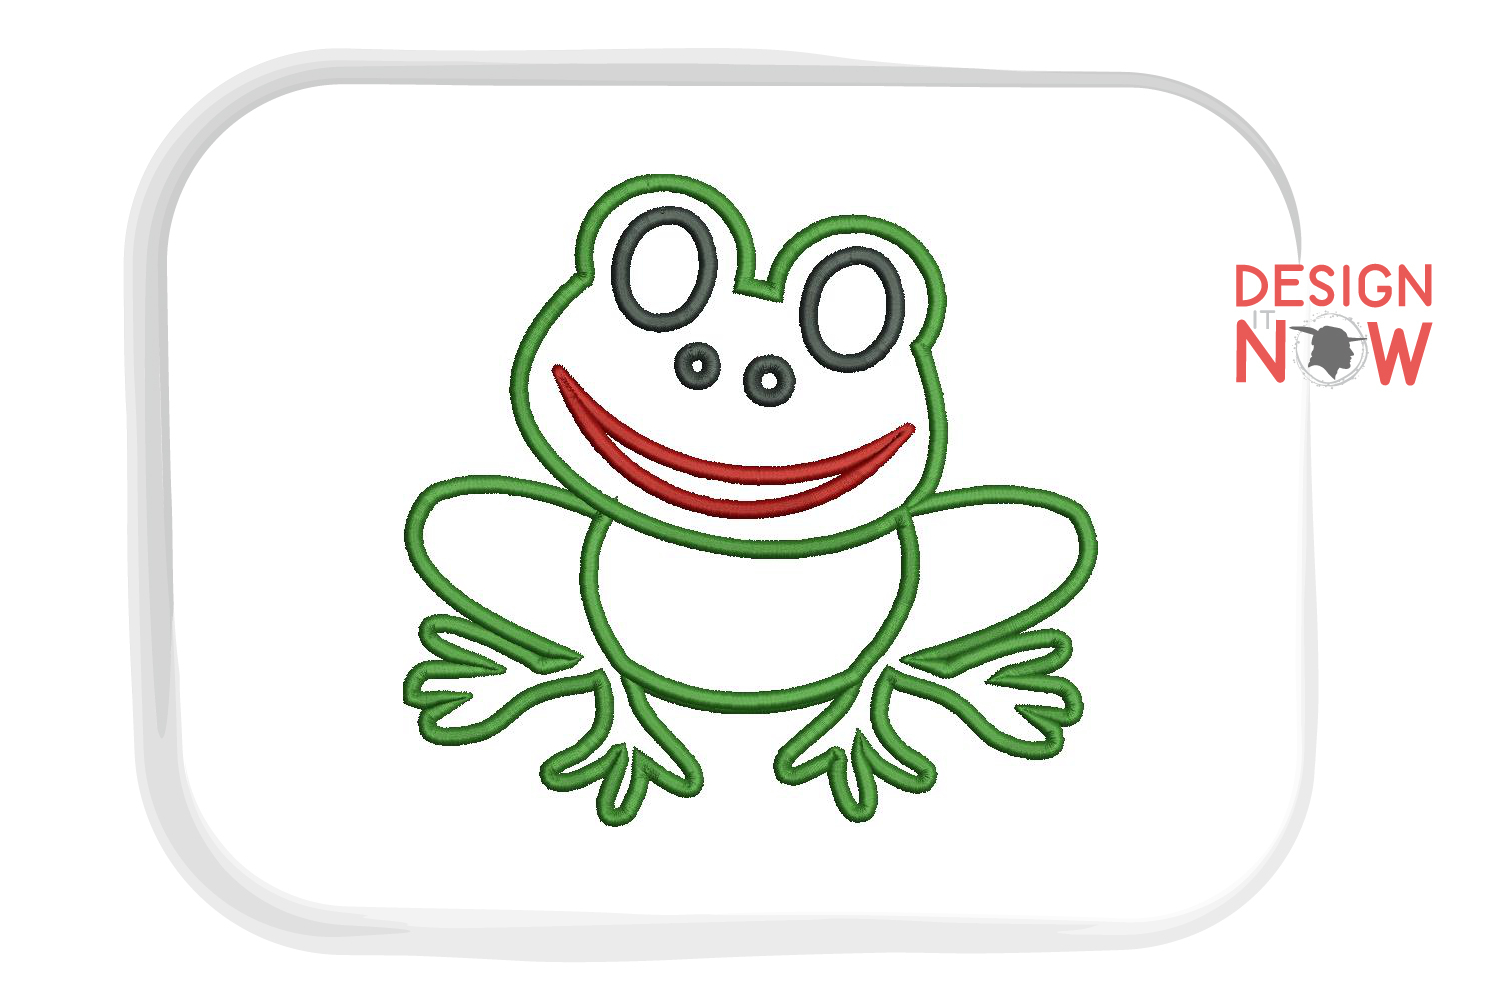 Frog Applique Embroidery Design, Embroidery Pattern example image 5